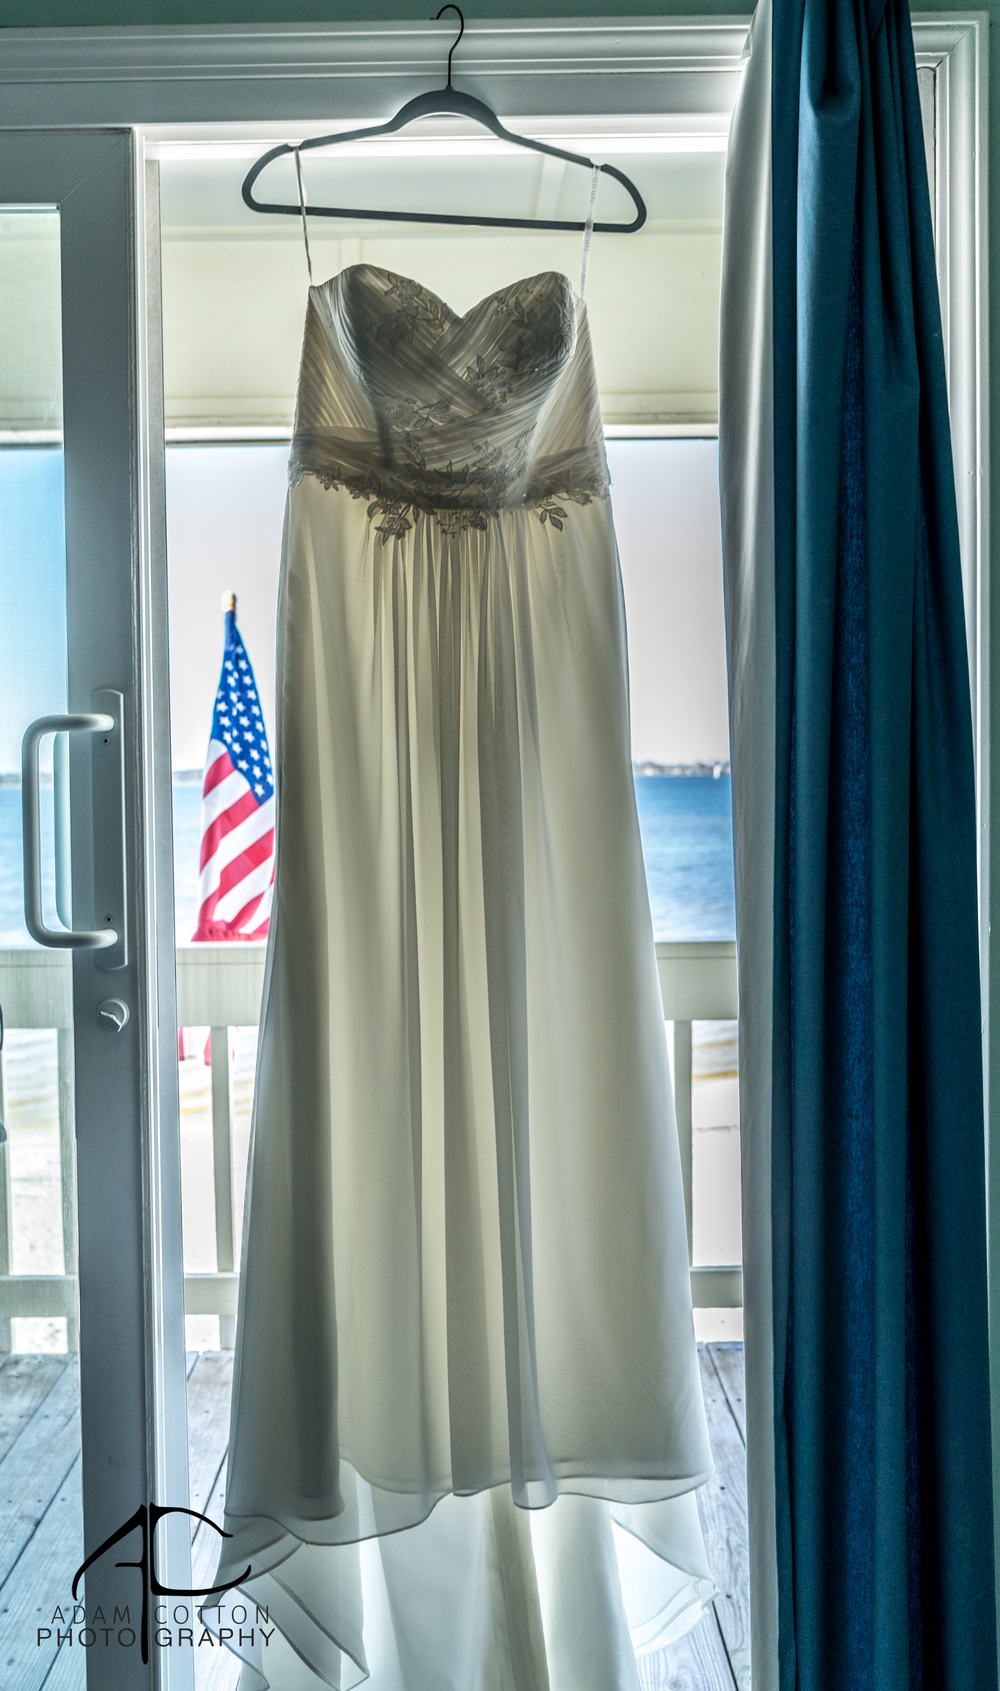 image of wedding dress in doorway backlit with american flag in background by photographer adam cotton